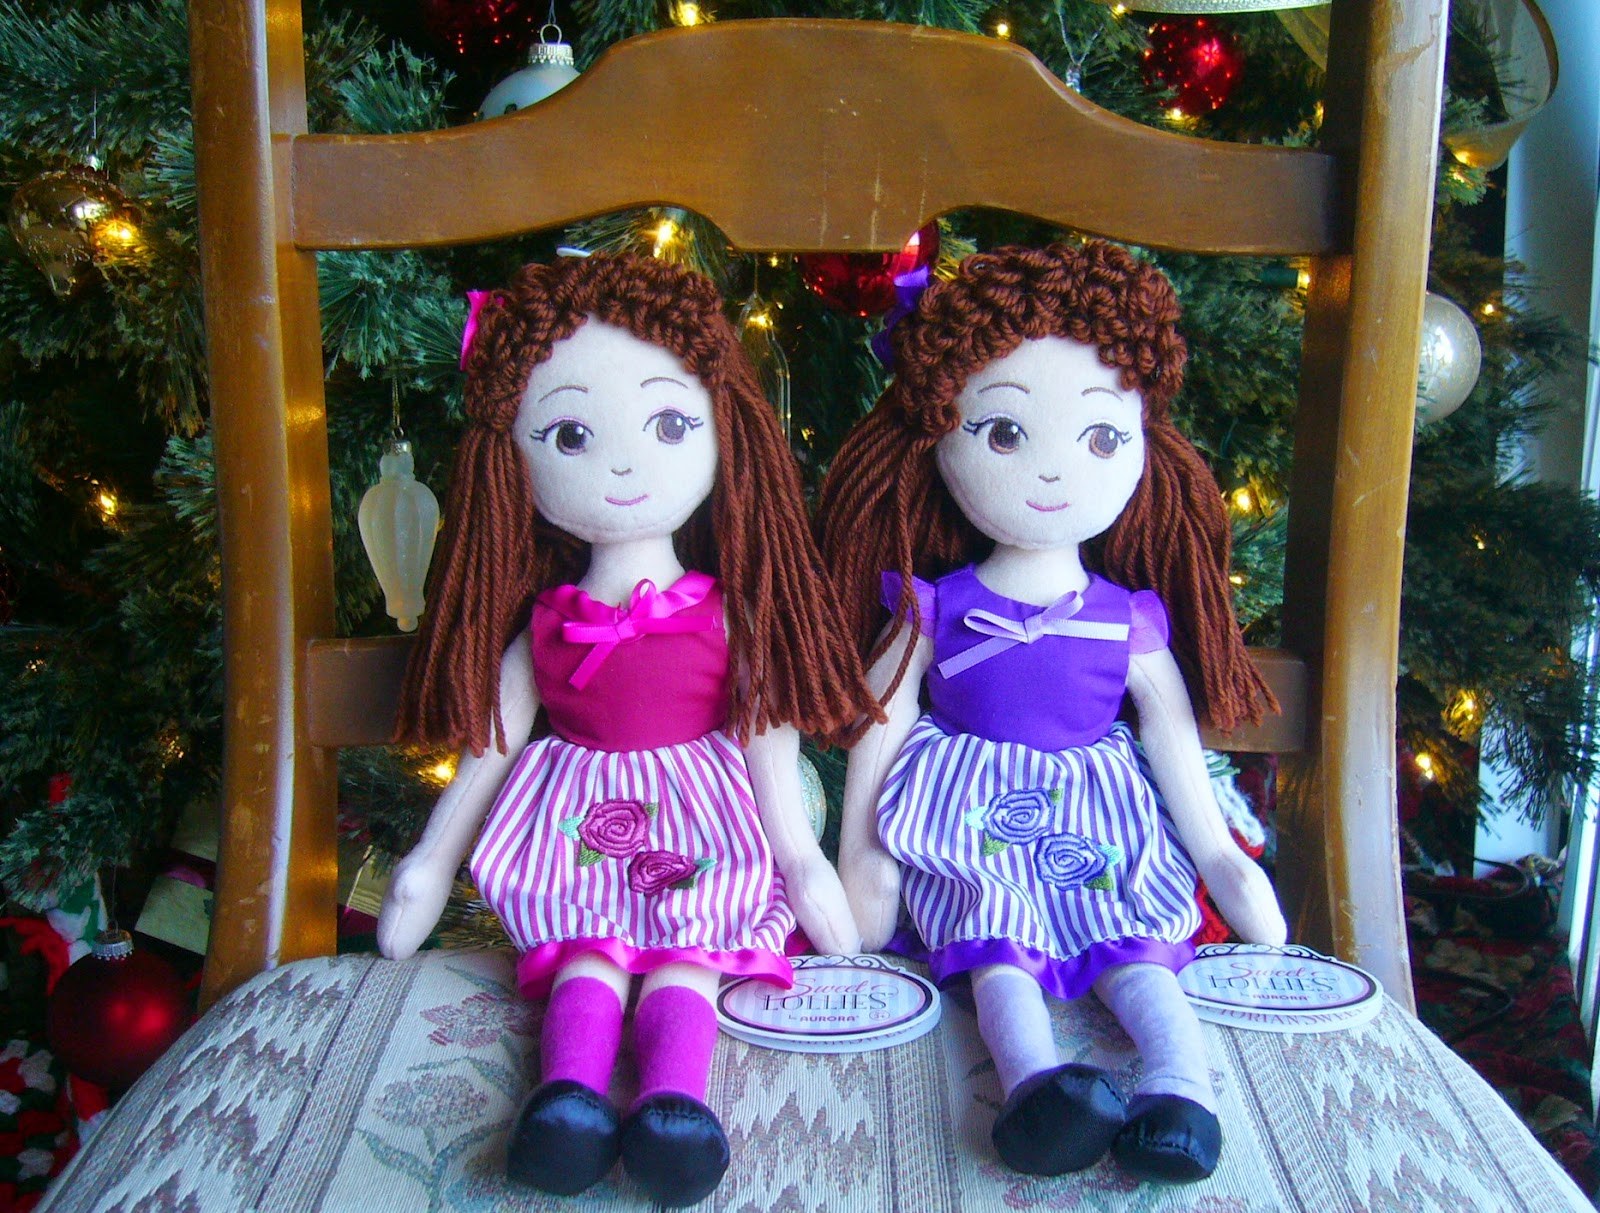 Dolls for Operation Christmas Child shoeboxes.